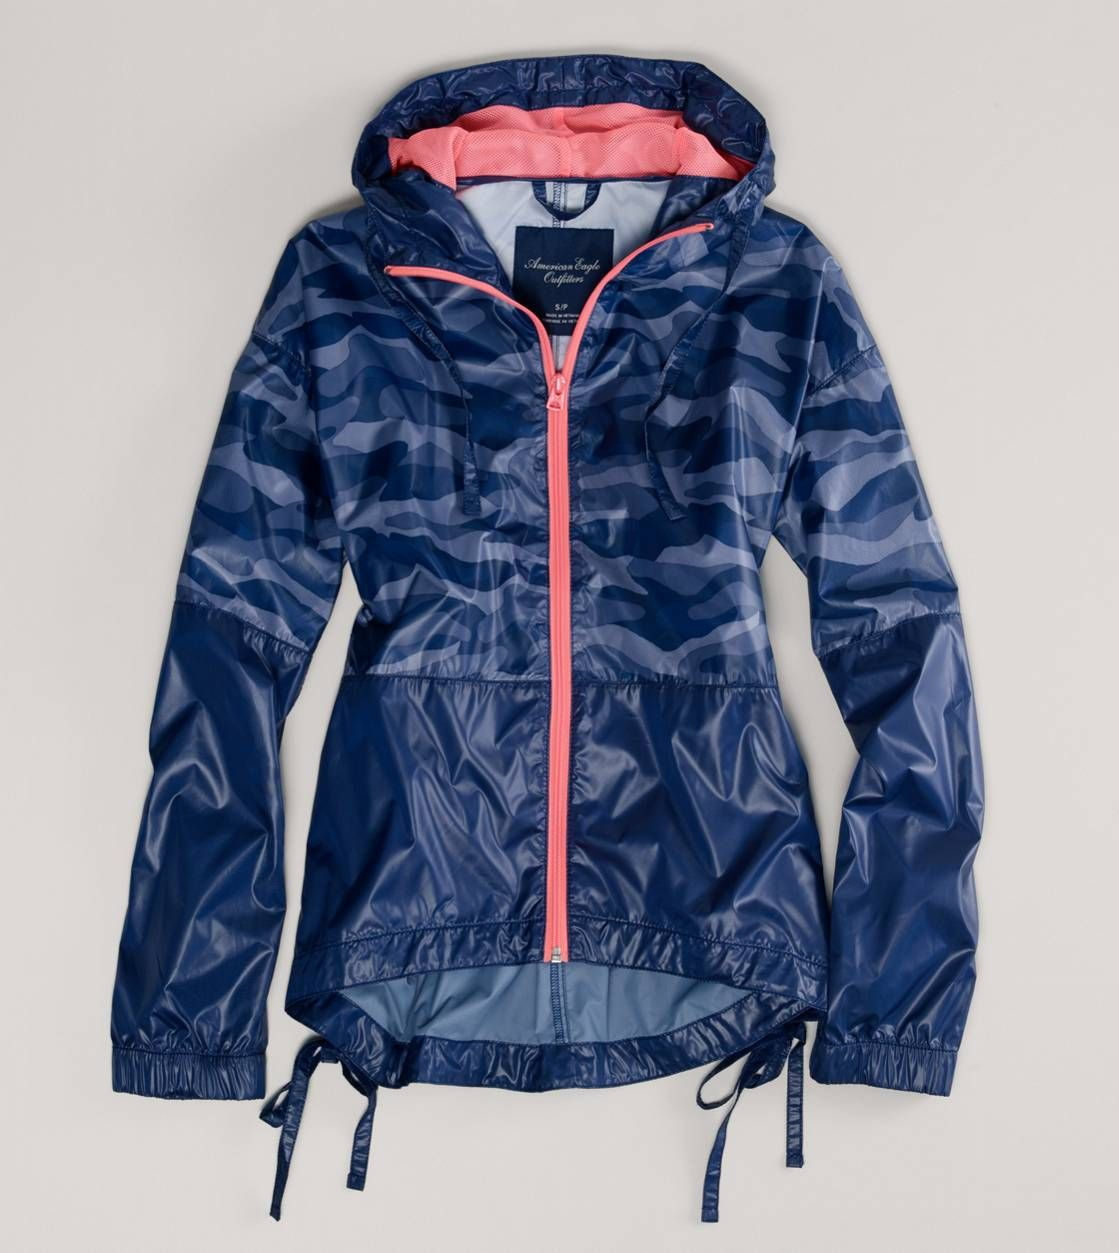 Ae Hooded Anorak Def Looking For This On My Next Trip To The Mall Clothes Rain Jacket Women Clothes For Women [ 1253 x 1119 Pixel ]